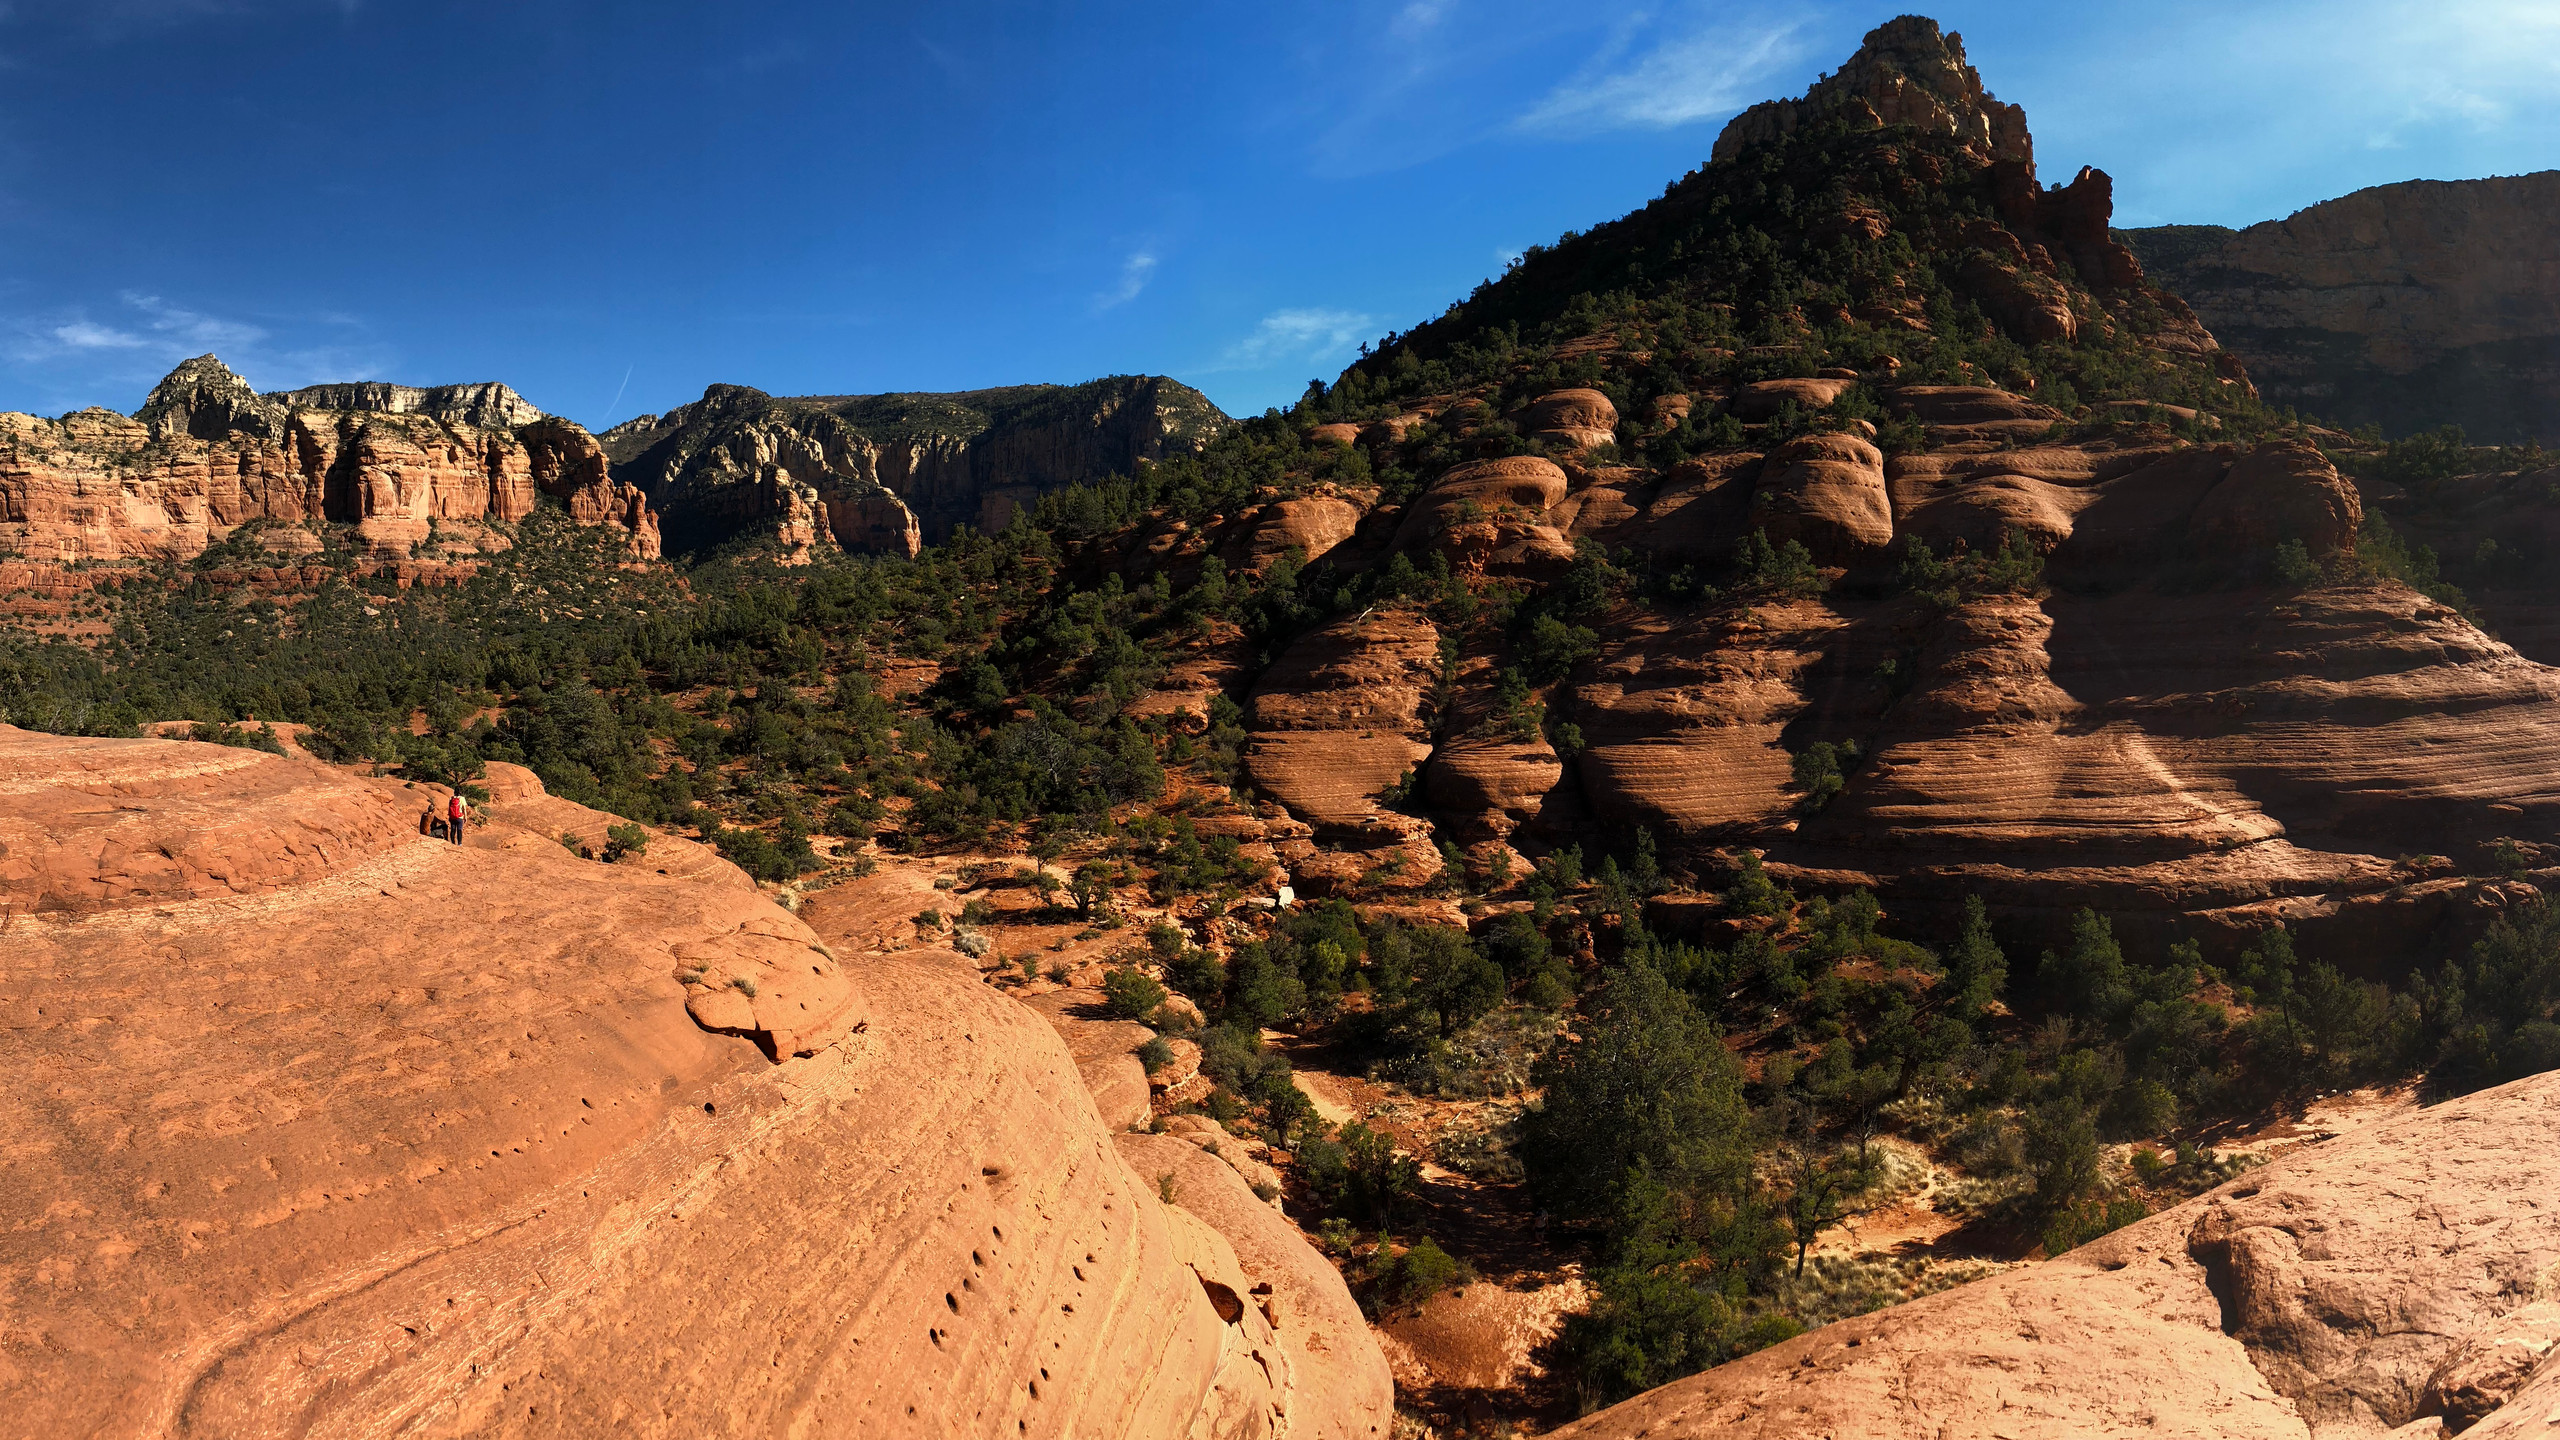 We took a trip to Sedona for more sights and adventures!